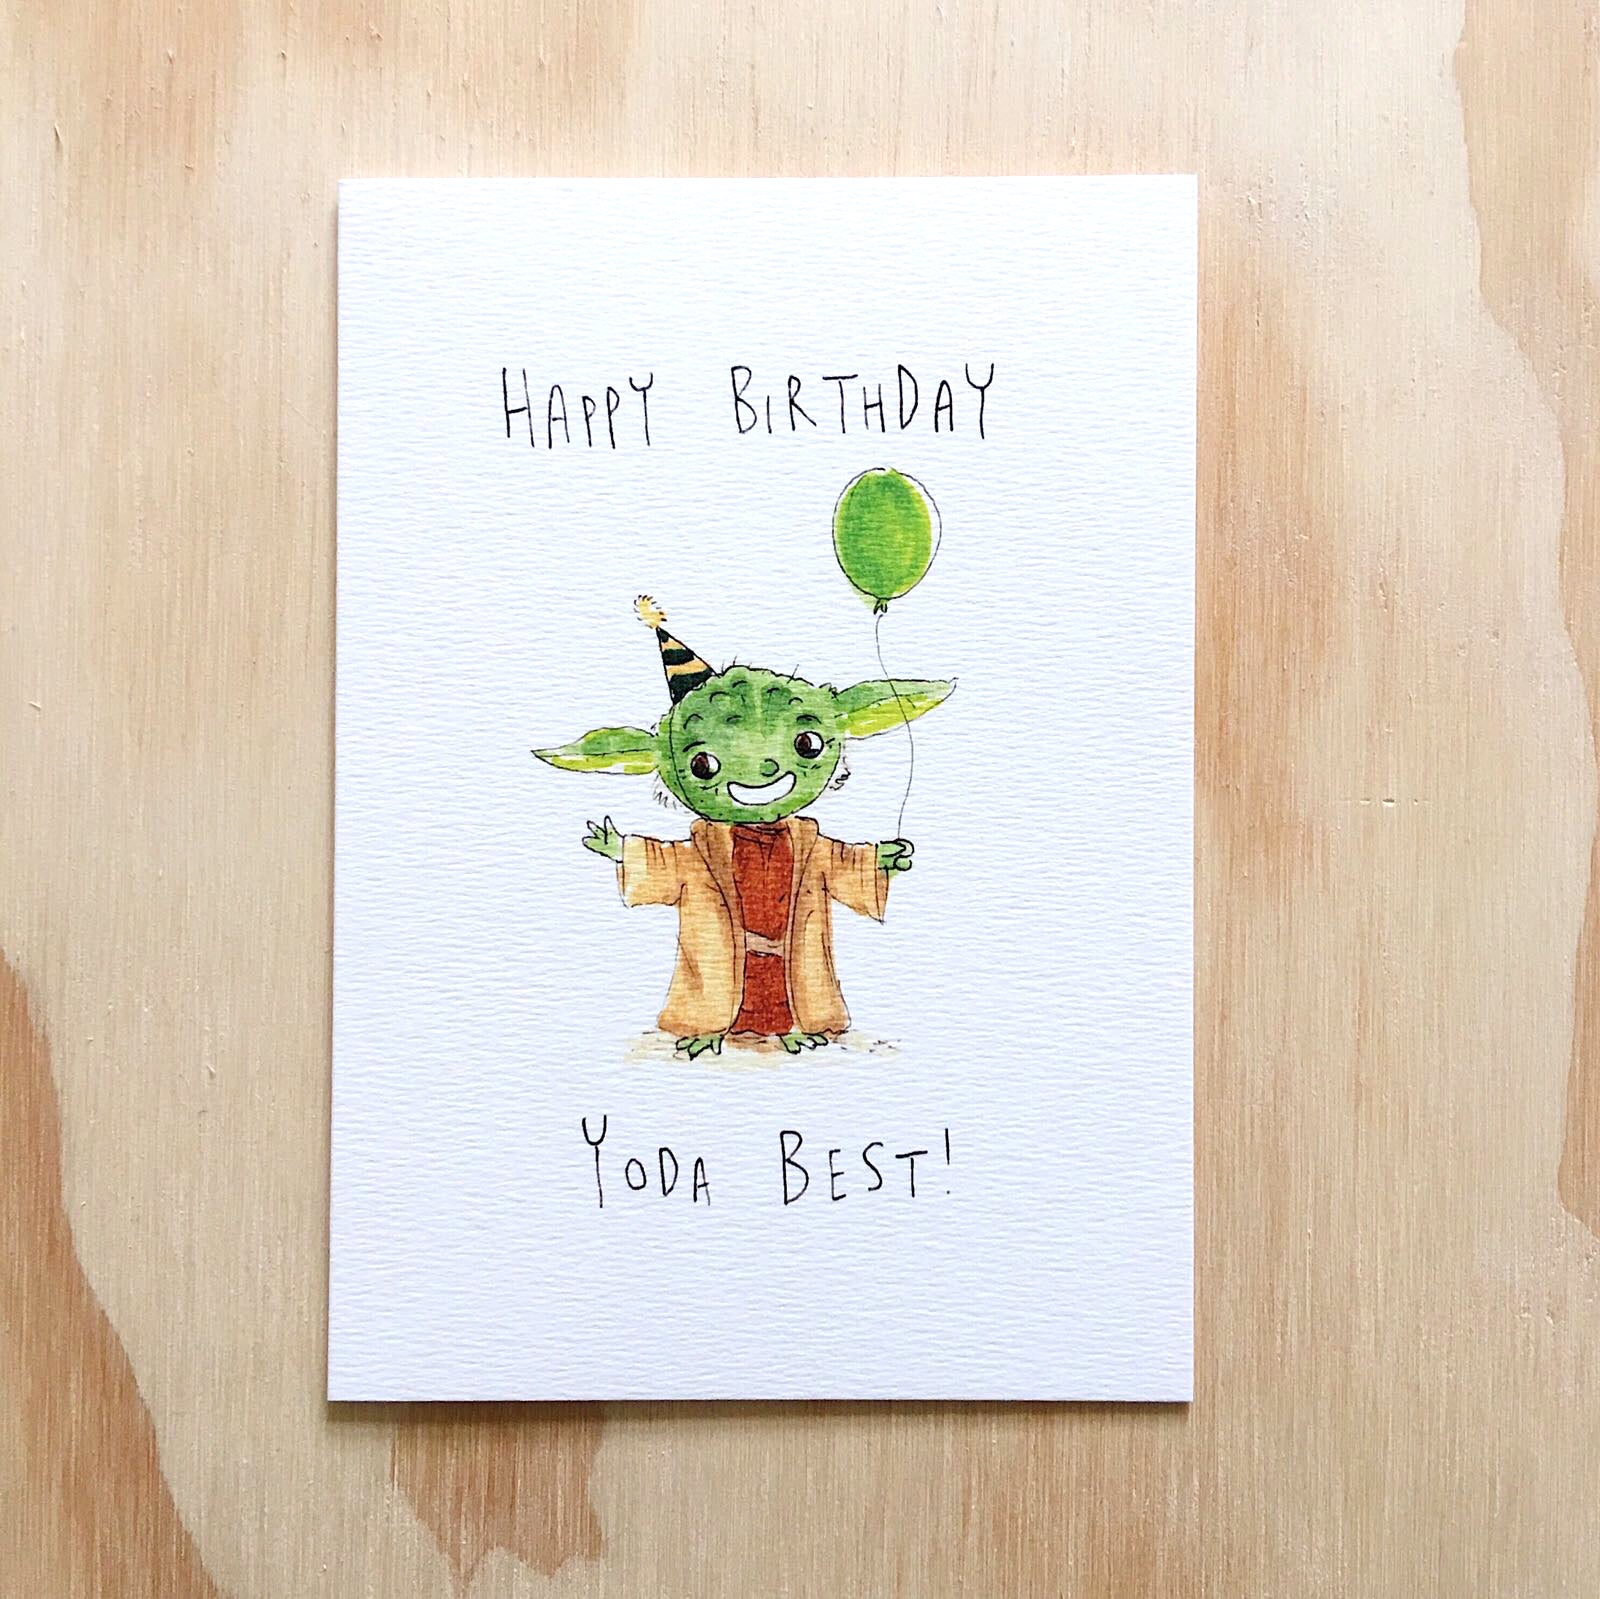 Happy Birthday, Yoda Best! - Well Drawn